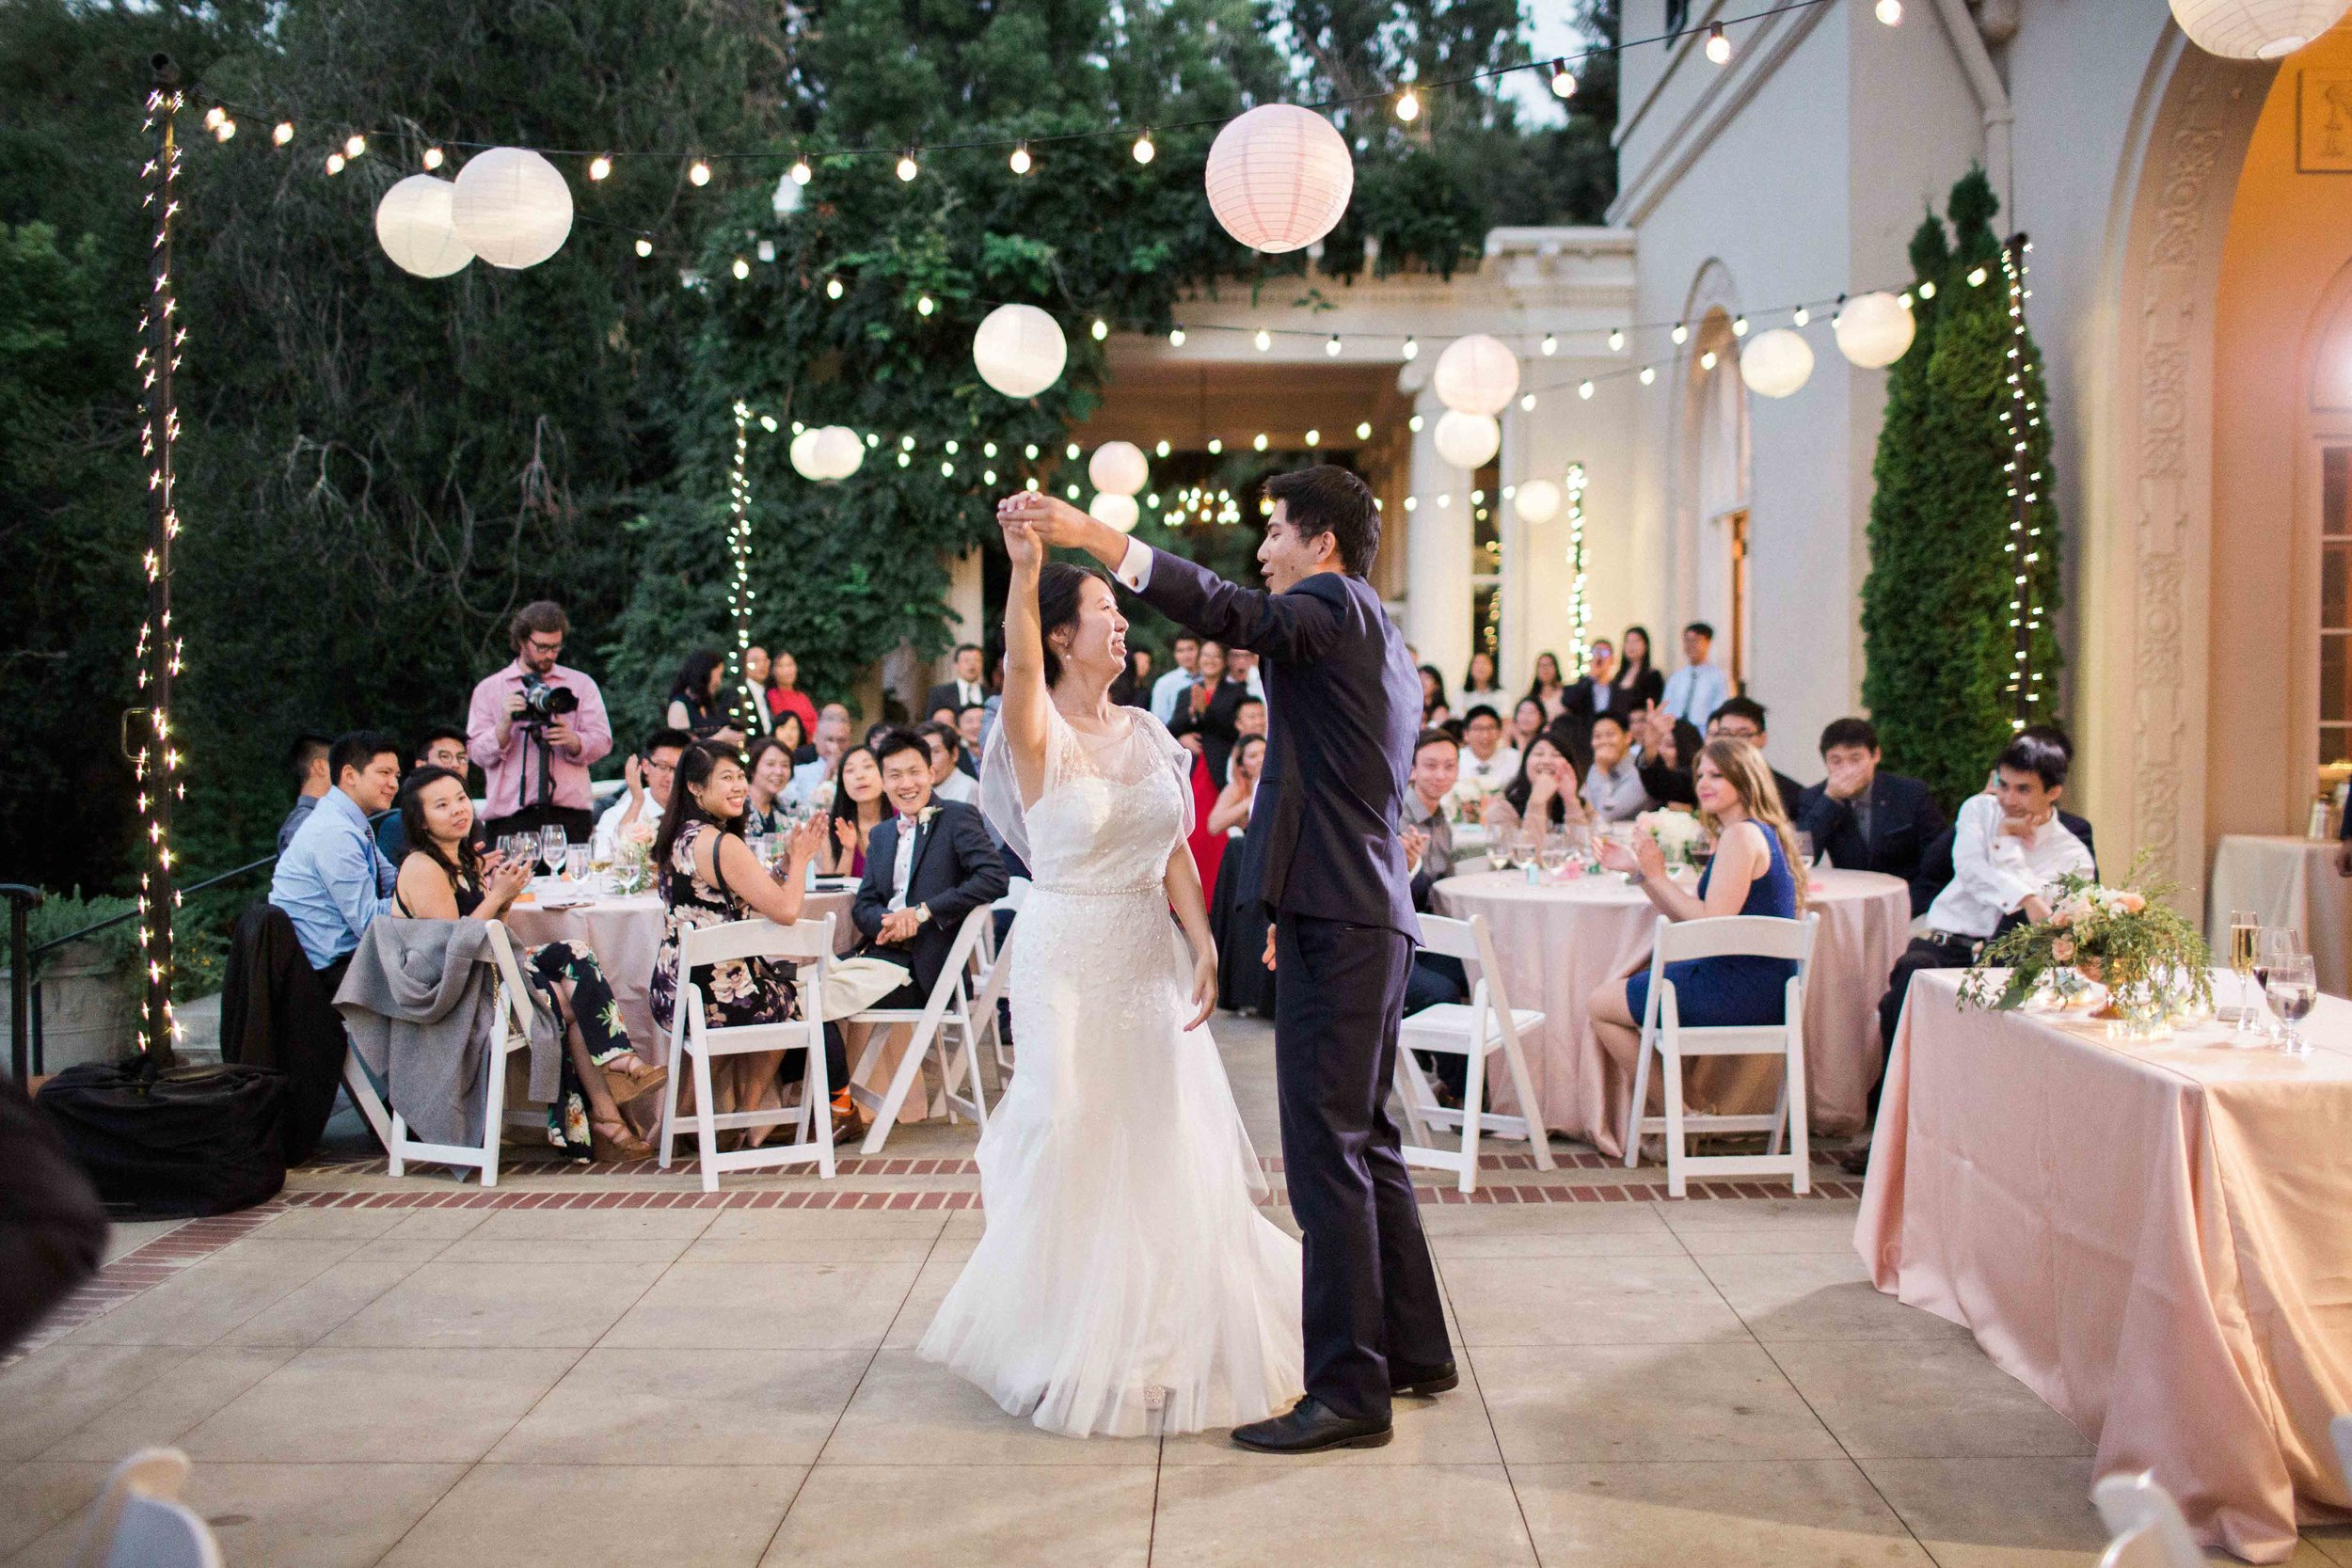 Villa_Montalvo_Wedding_Photographer_Videographer_San_Francisco186.jpg